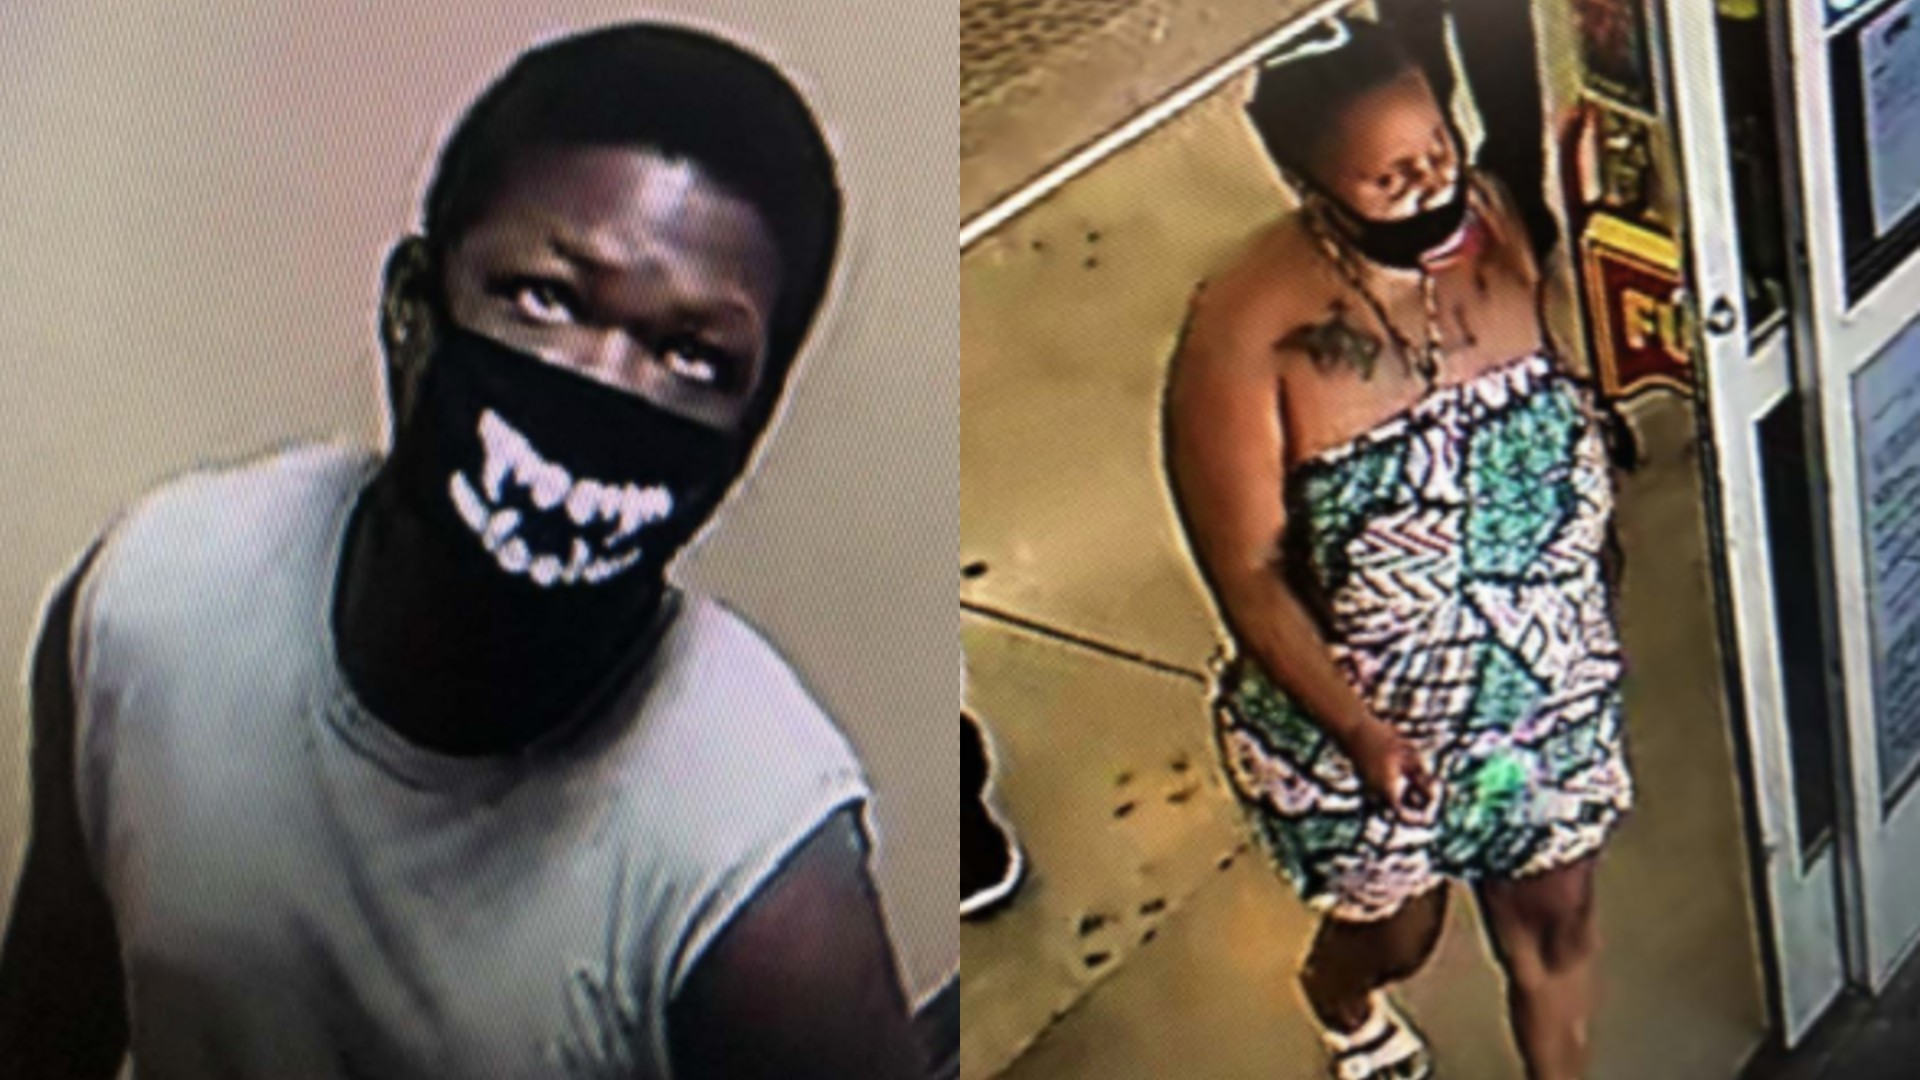 The Los Angeles County Sheriff's Department released the photos of two people sought in connection with an assault and robbery in Lancaster on July 8, 2020.